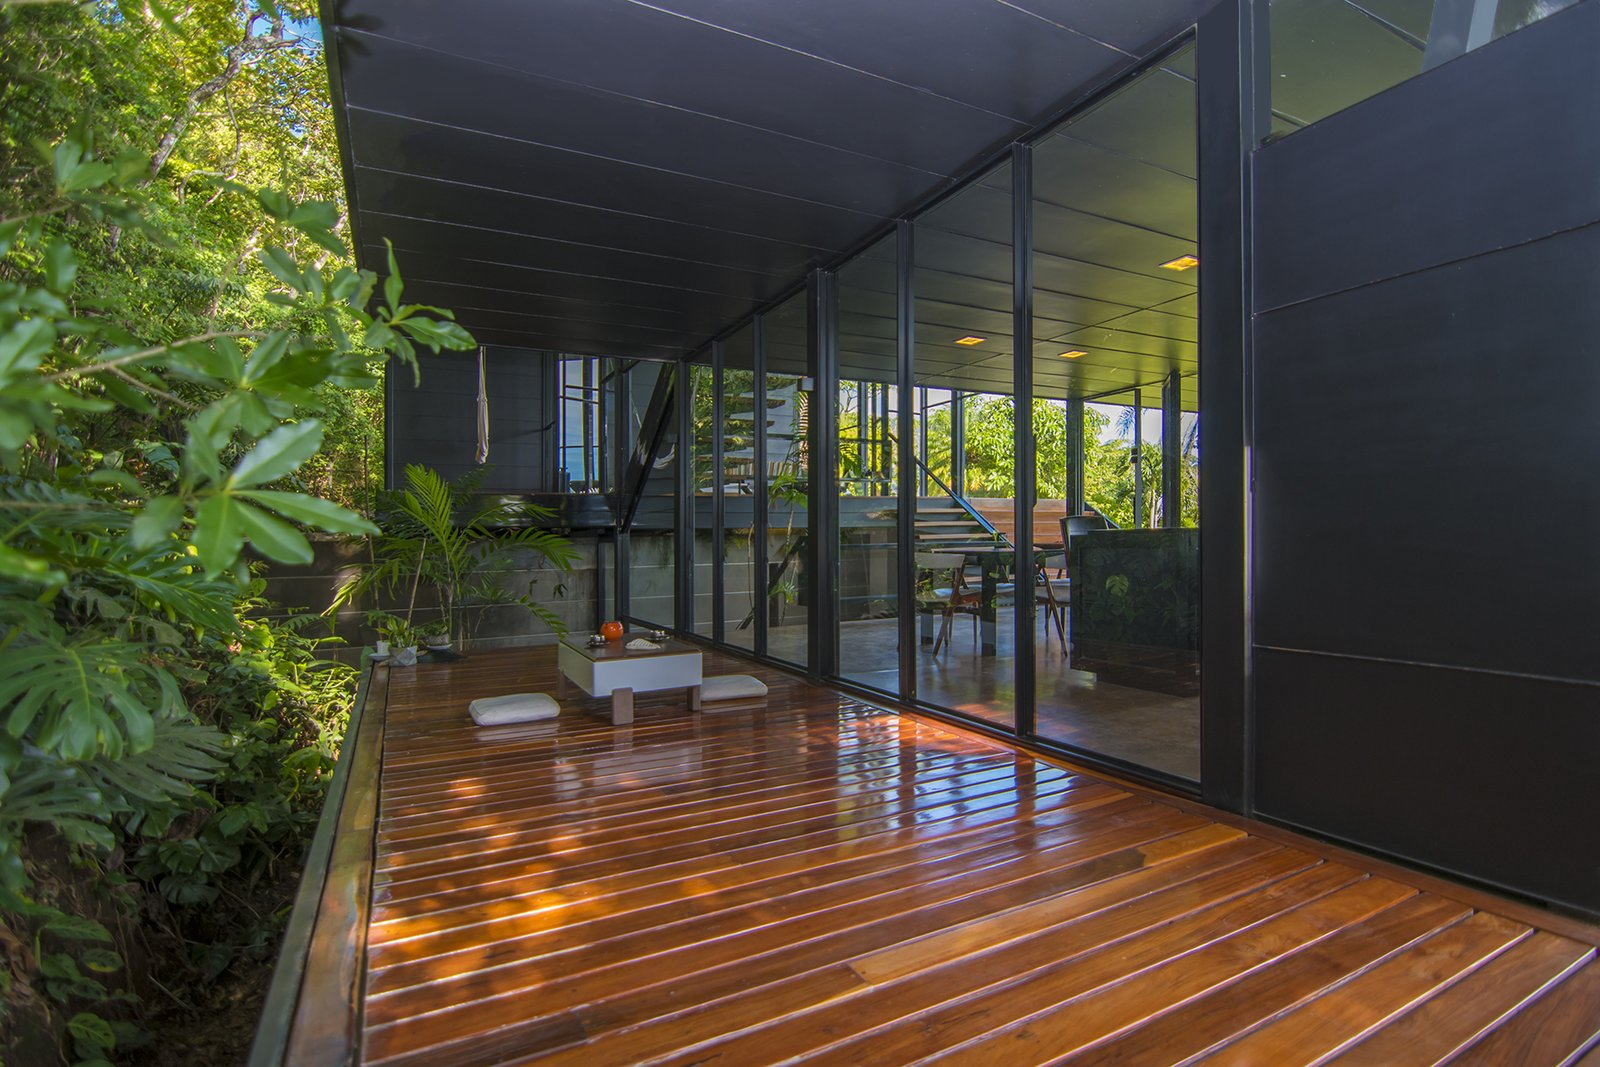 Outdoor and Wood Patio, Porch, Deck  A Harmonious Forest Residence in Costa Rica Asks $1.05M